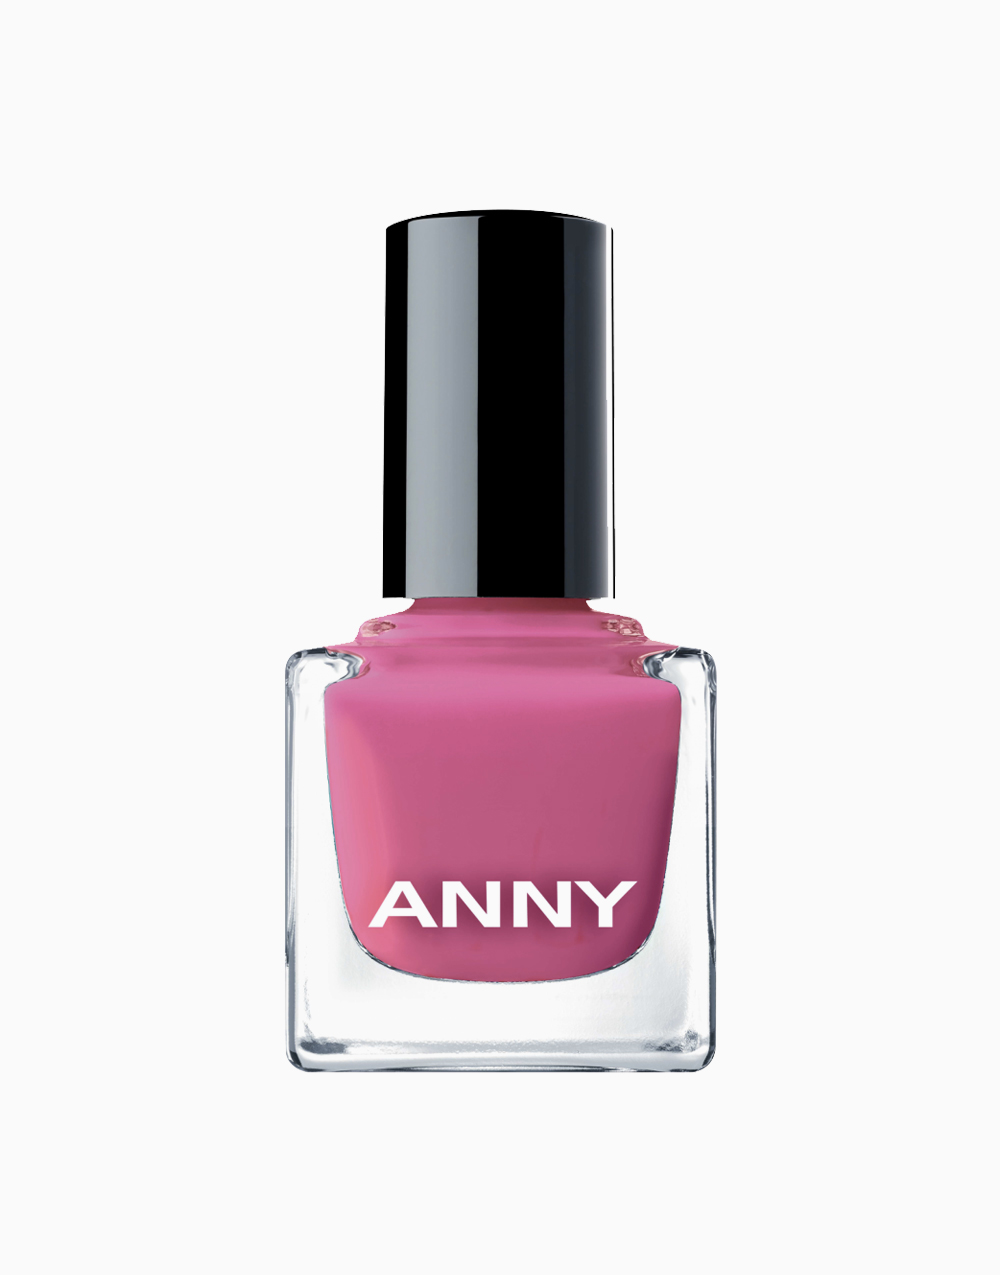 Nail Polish by Anny | ALL THE BEST